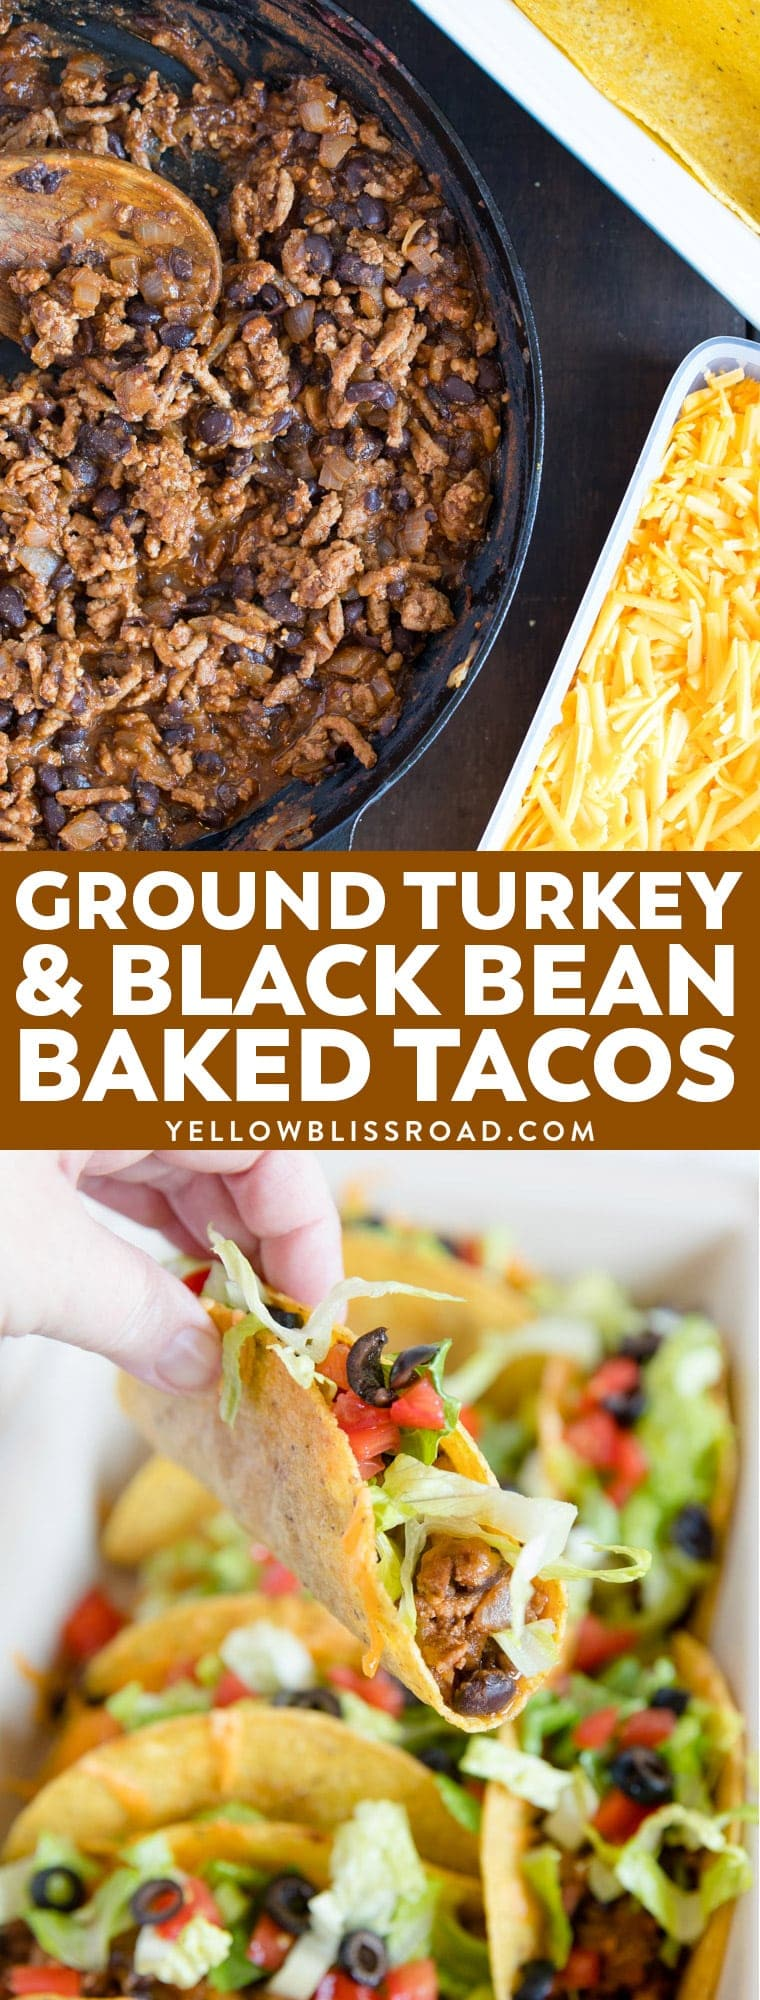 Ground Turkey and Black Bean Baked Tacos | Easy Weeknight Meal | Healthy Dinner Idea | Family Friendly Meals